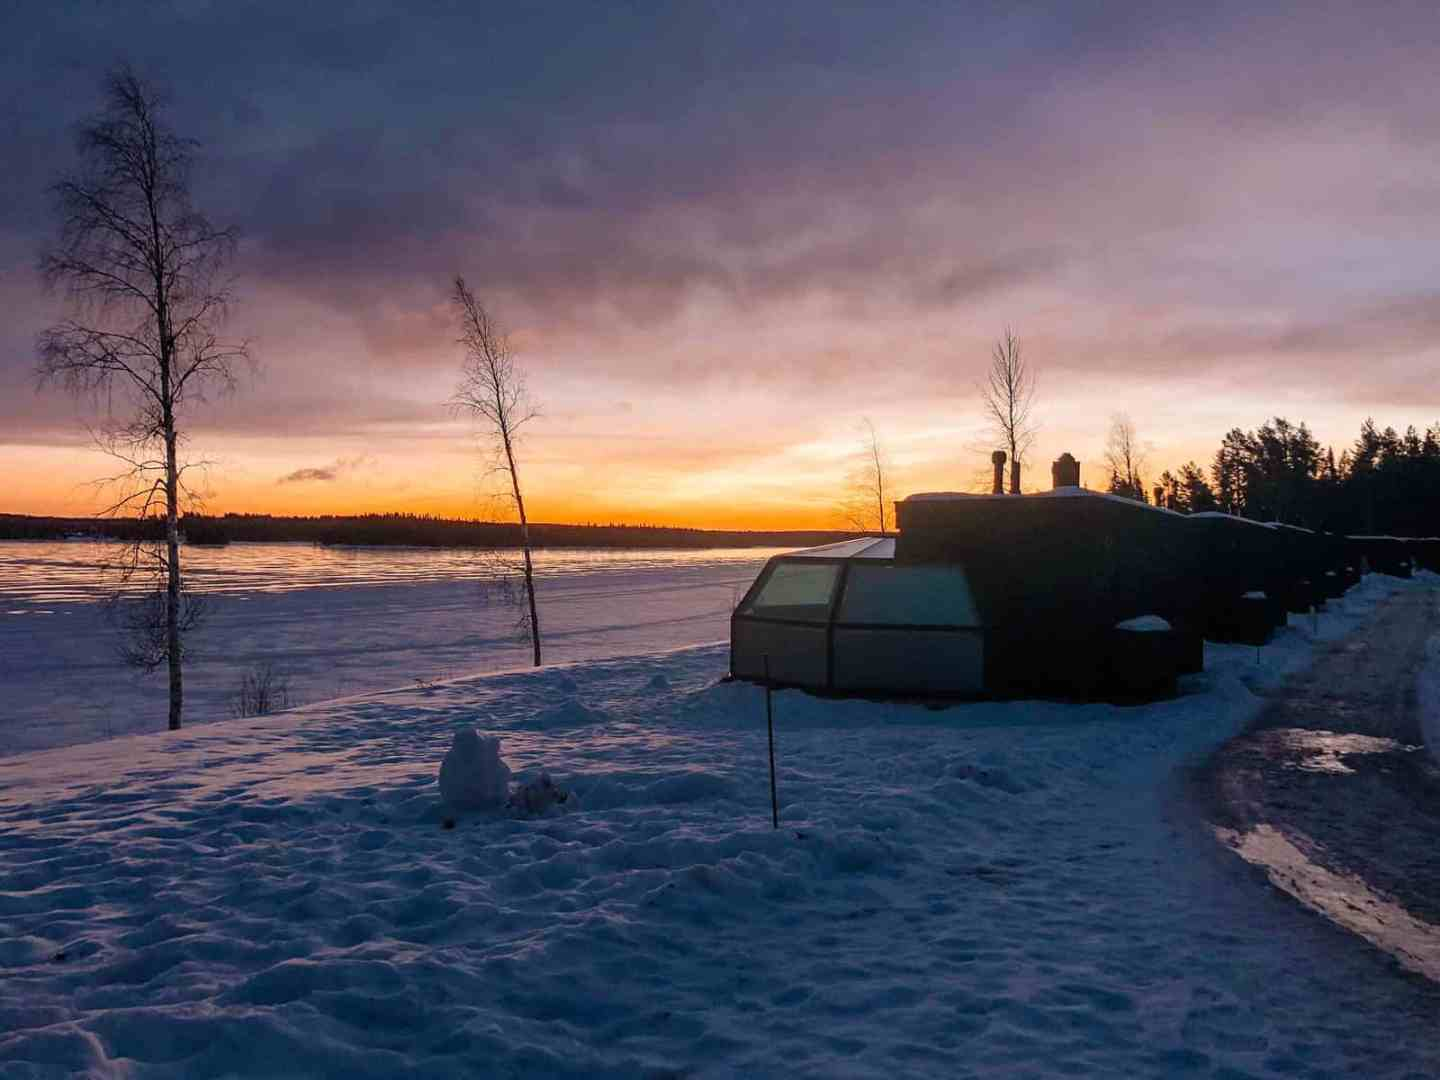 A row of glass igloos in front of the sun rising over a frozen lake